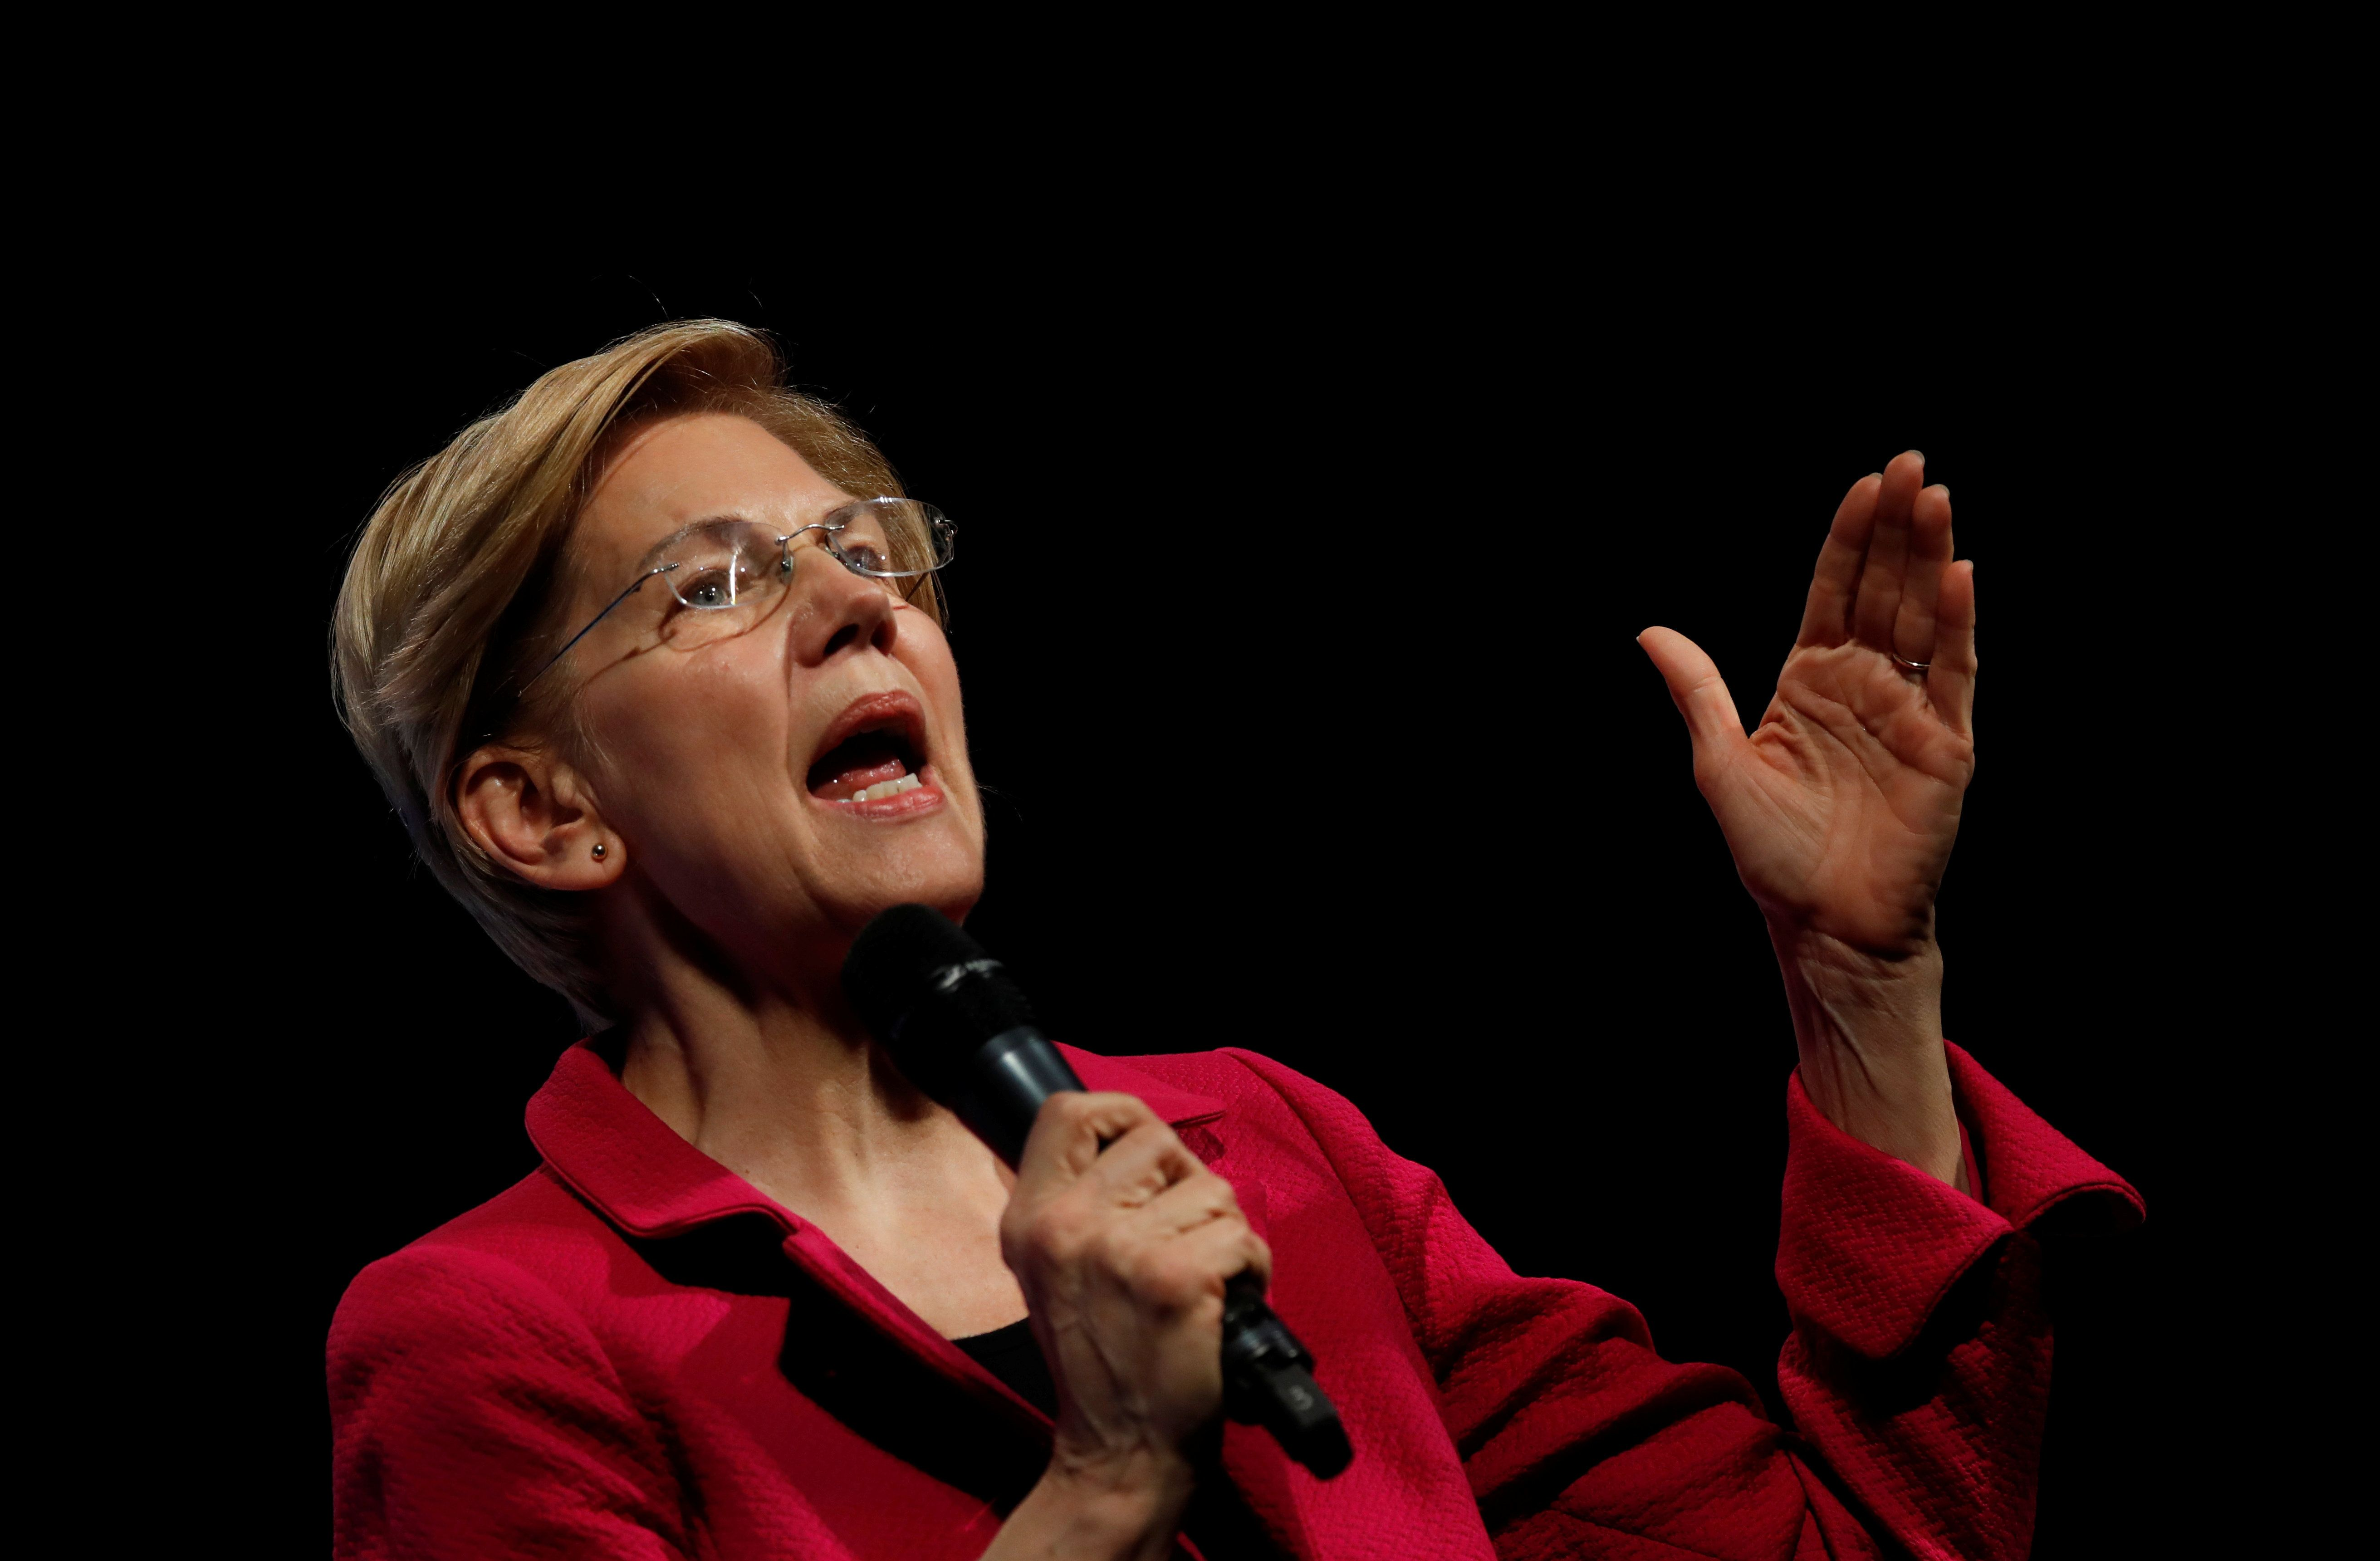 Elizabeth Warren On Sexism And Not Getting 'Hillary'd' In The 2020 Election